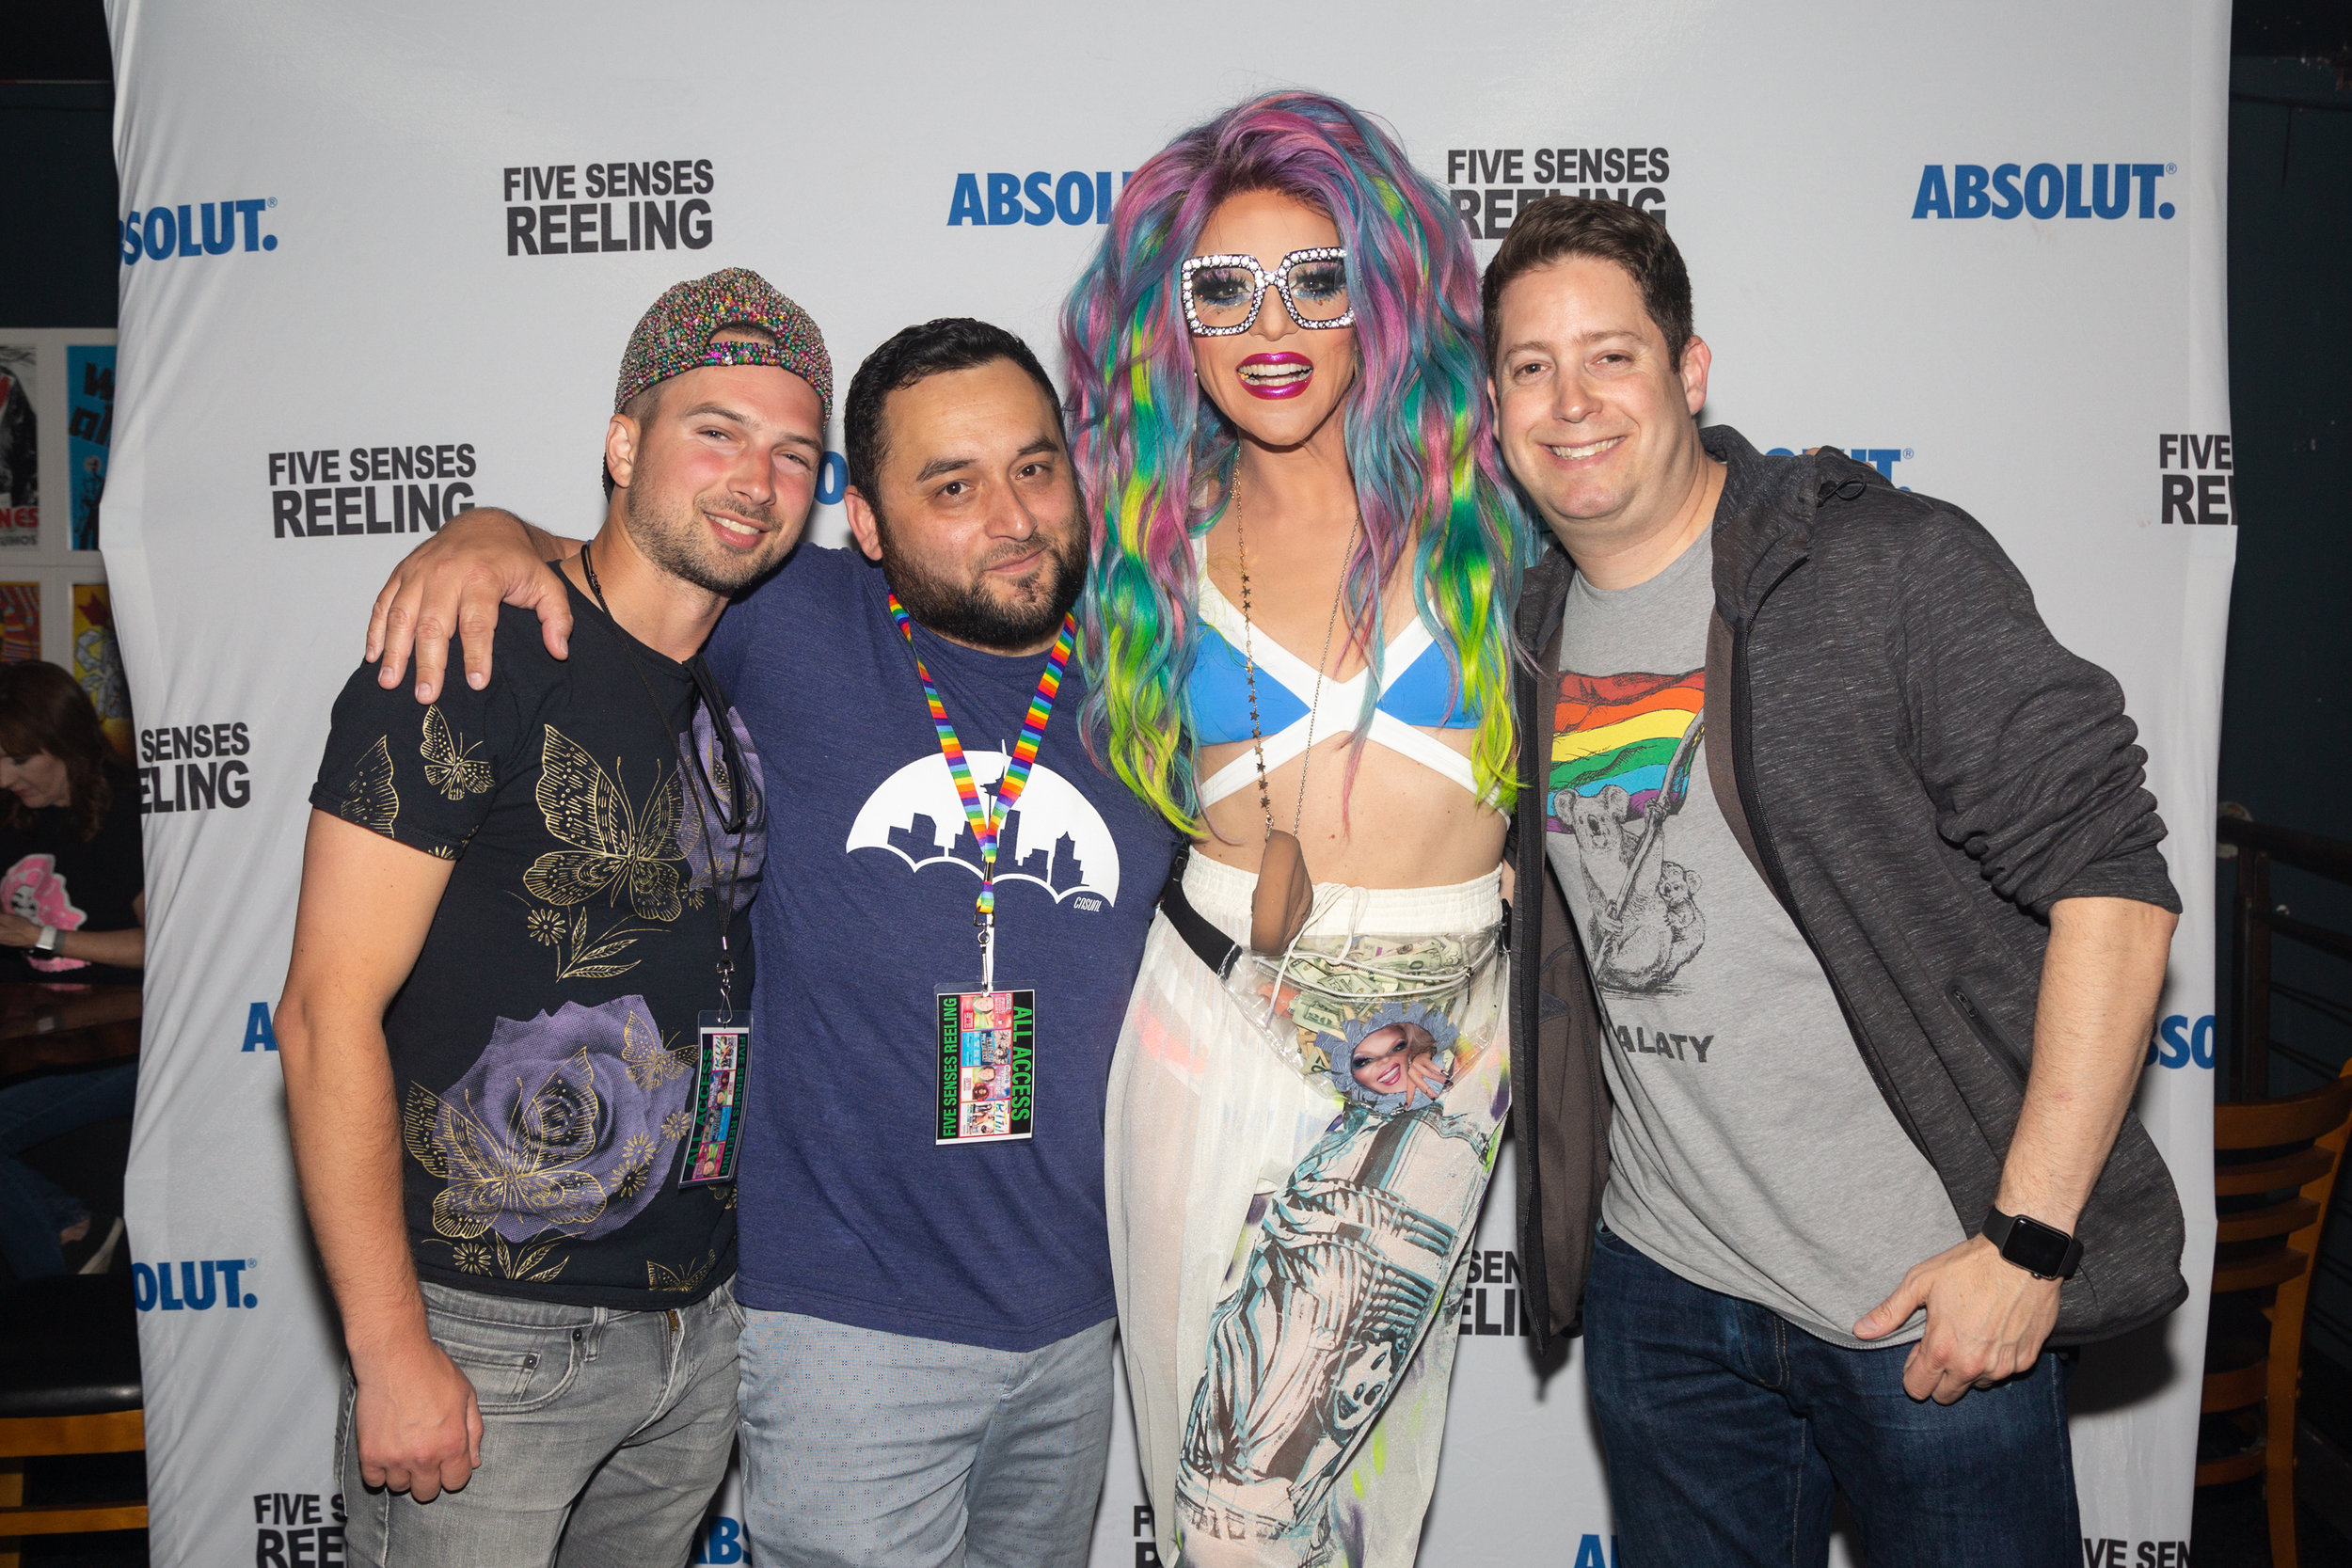 Meet and greet photos with Willam